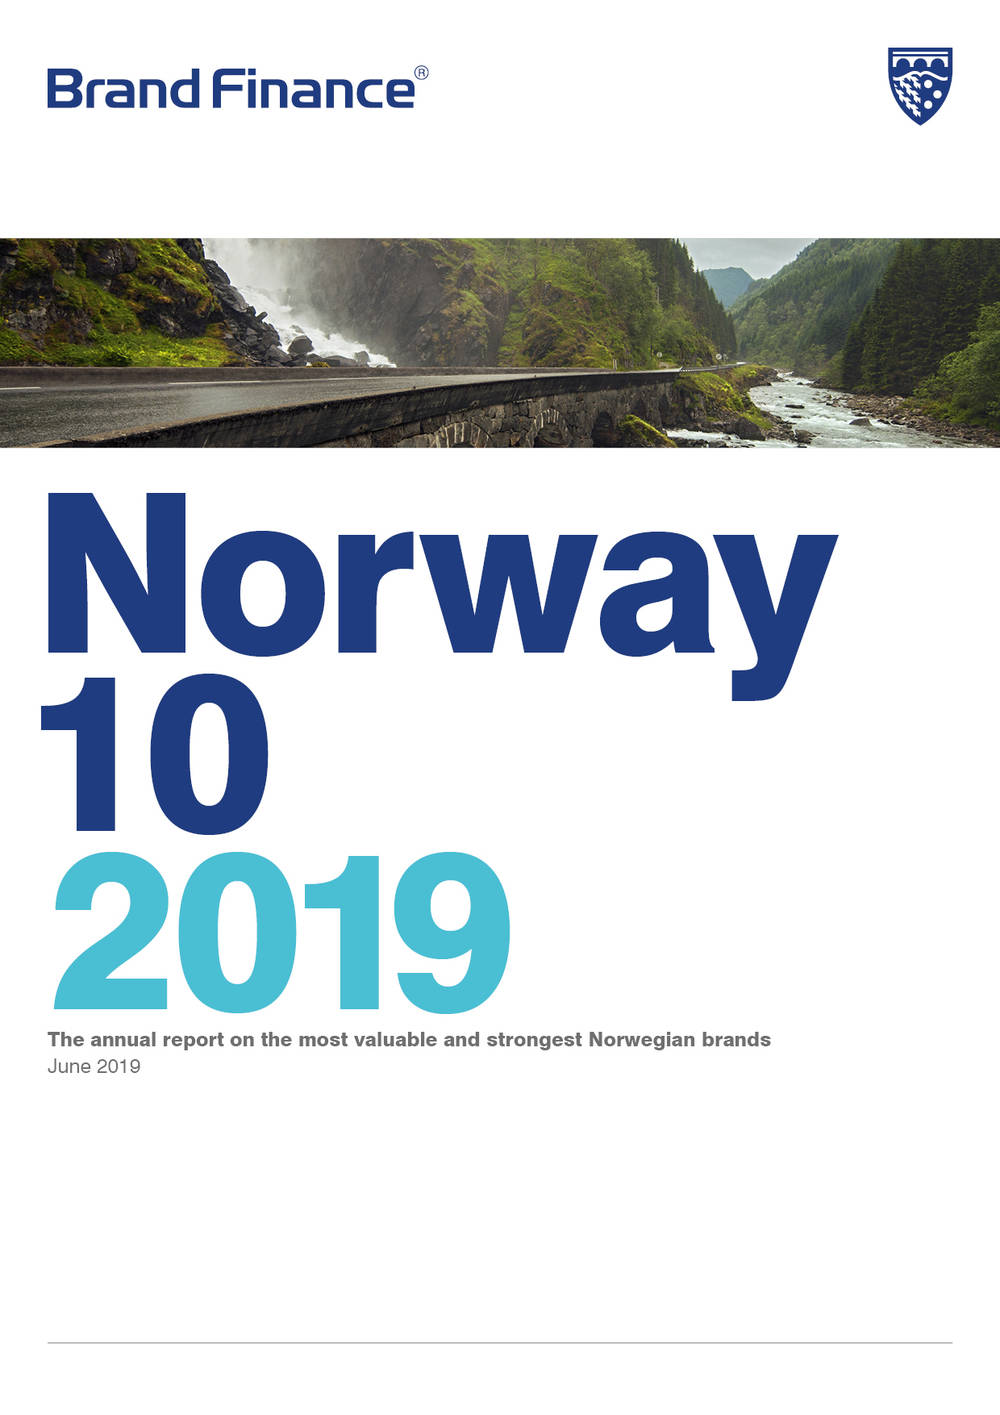 Brand Finance Norway 10 2019